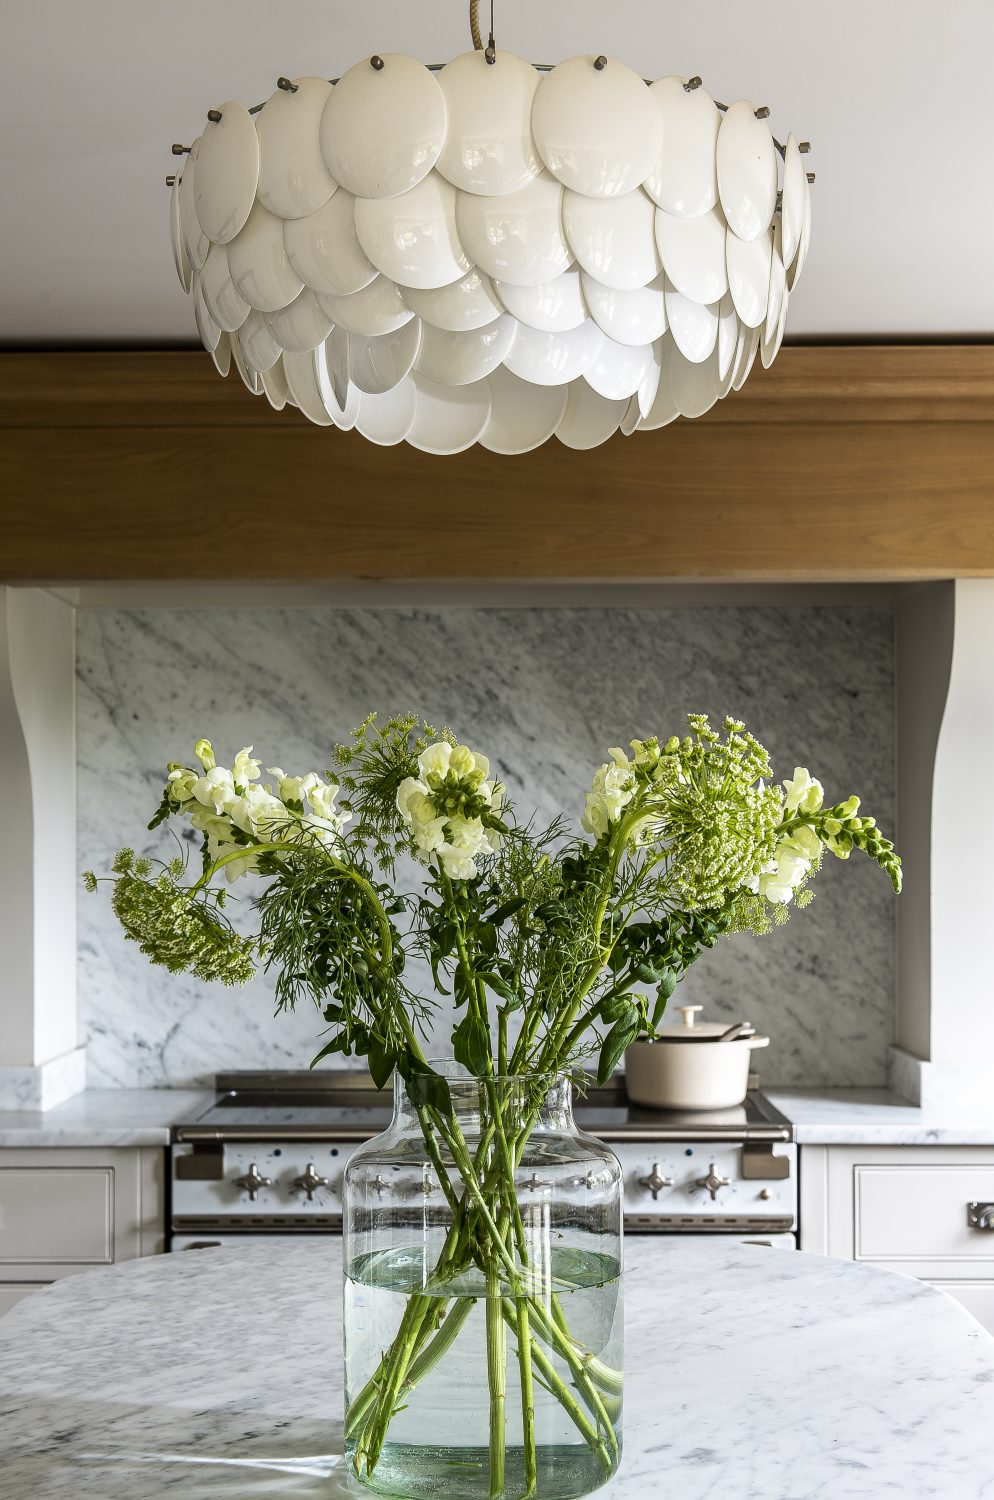 The stunning ceramic light from Heal's and the white glossy range add a touch of glamour